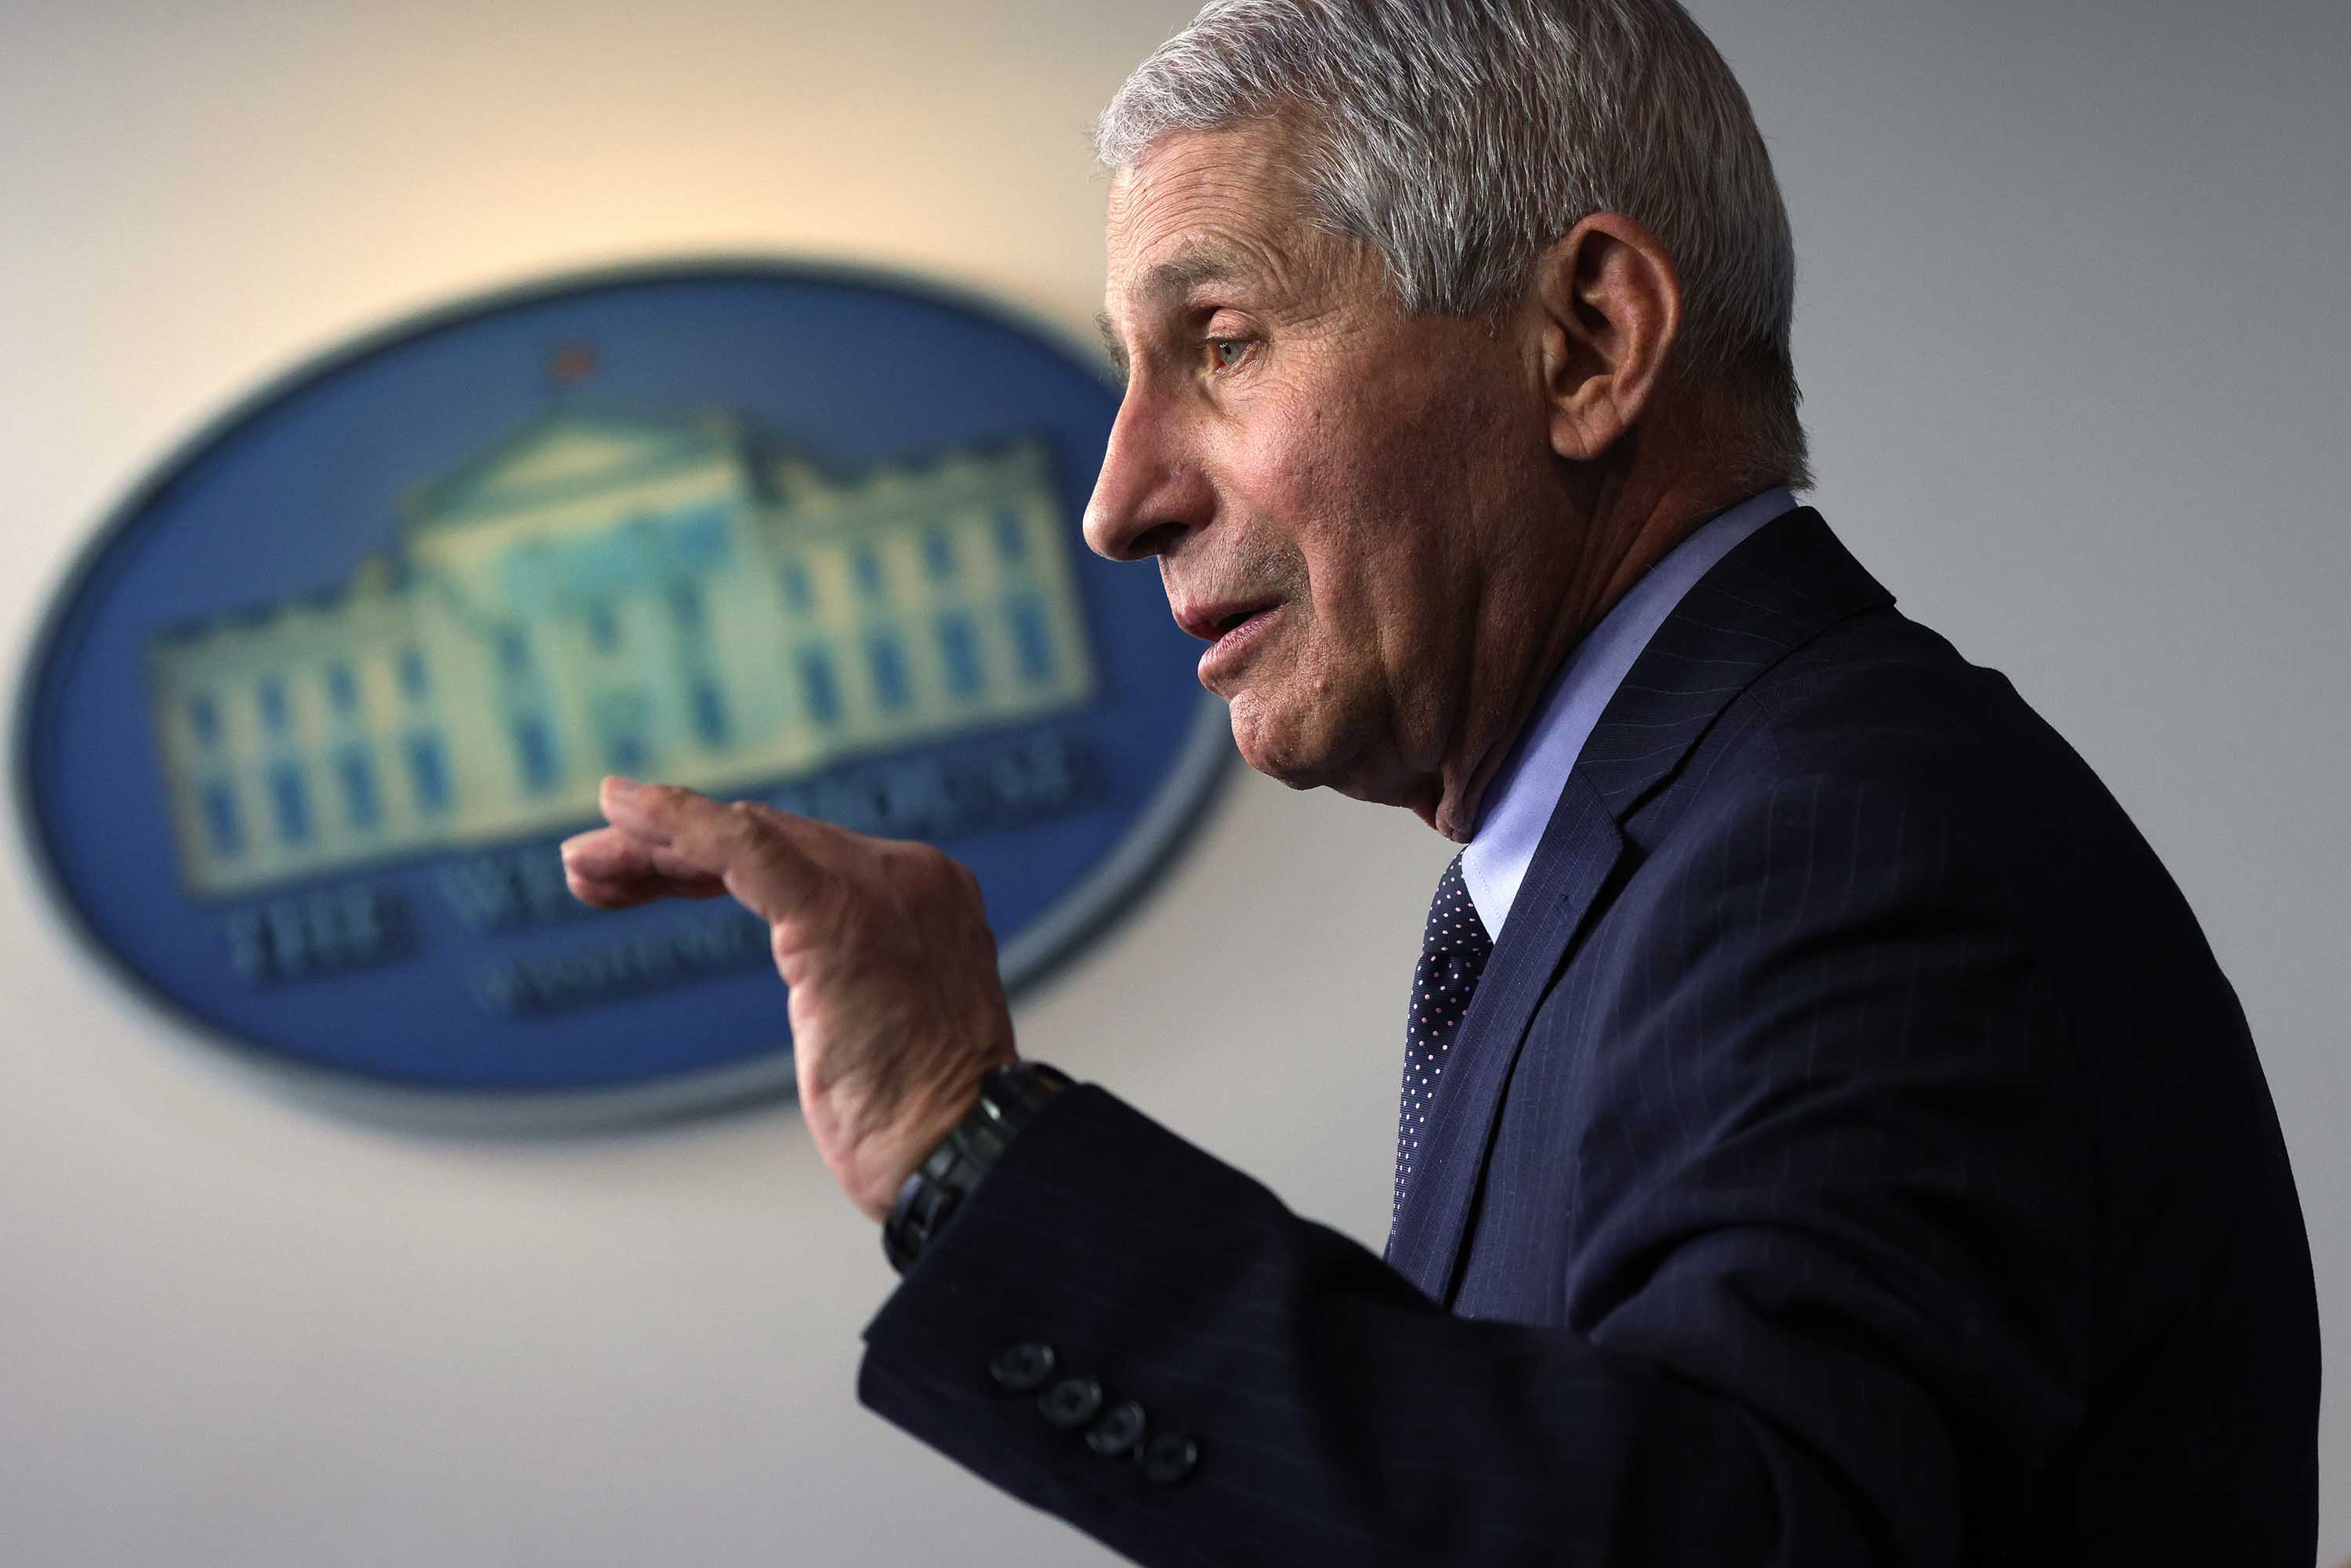 Dr. Anthony Fauci speaks during a White House press briefing on January 21 in Washington, DC.